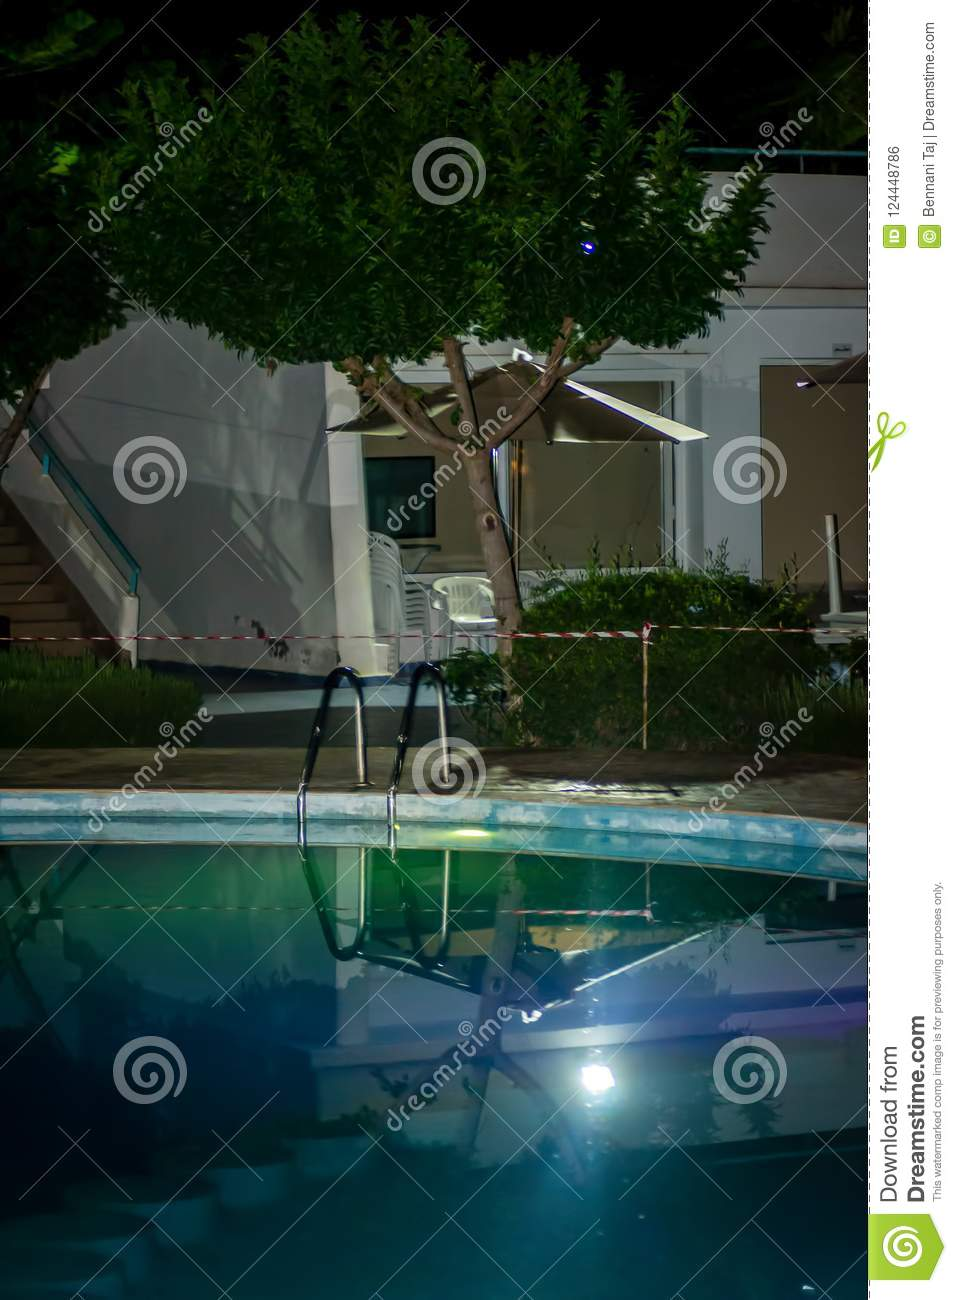 A pool on the night